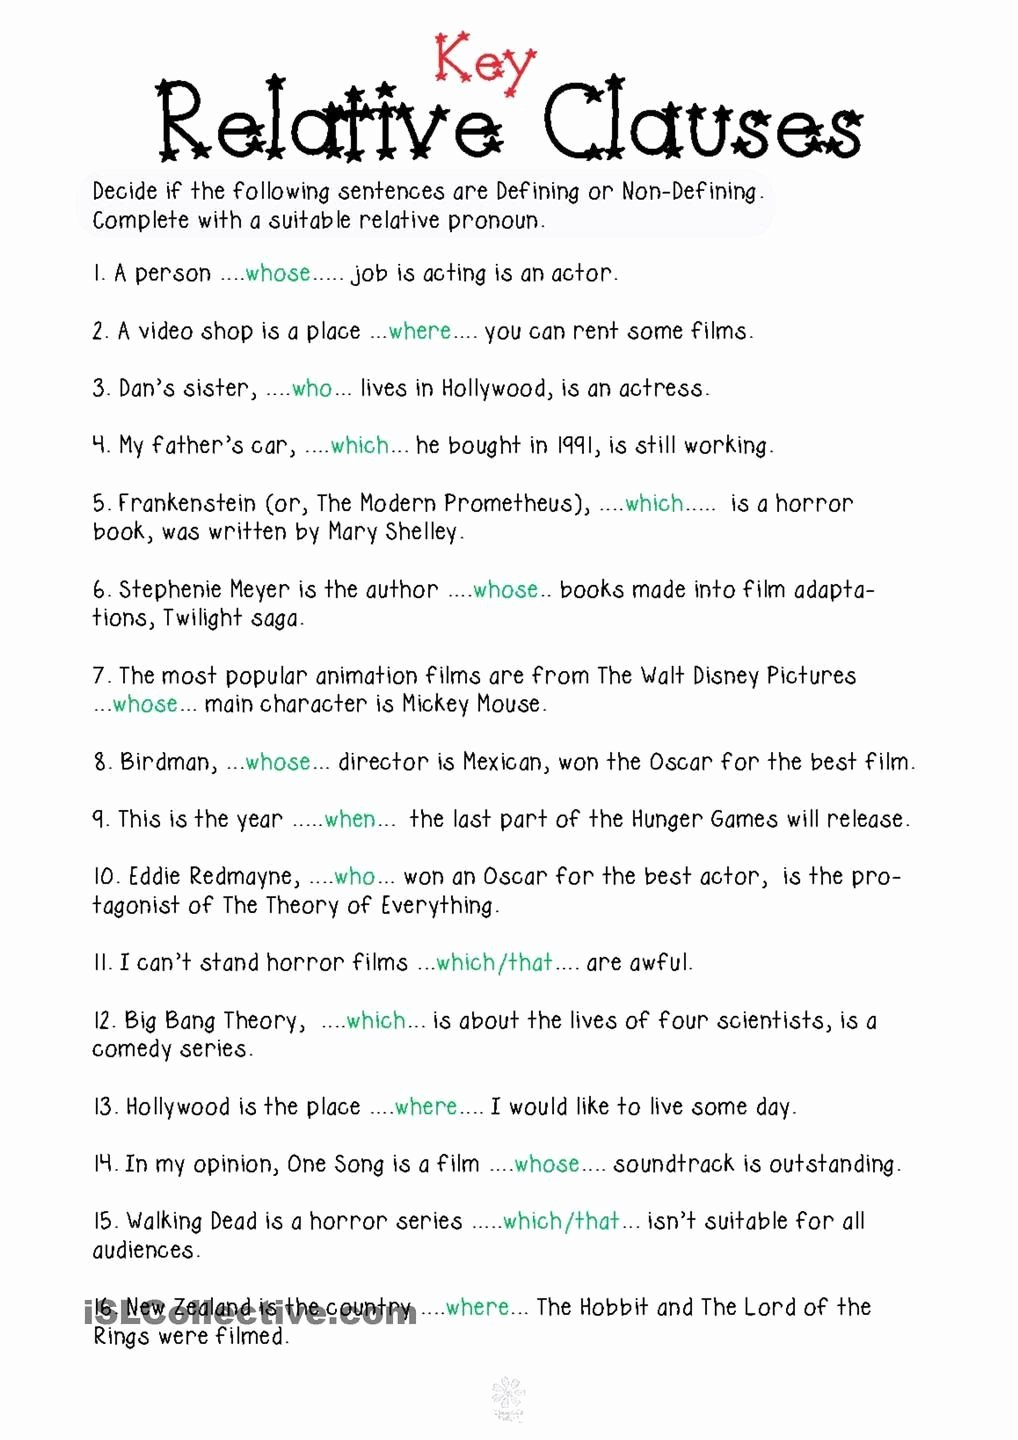 Relative Pronoun Worksheet 4th Grade Lovely Relative Pronouns Worksheet Grade 4 Relative Clauses In 2020